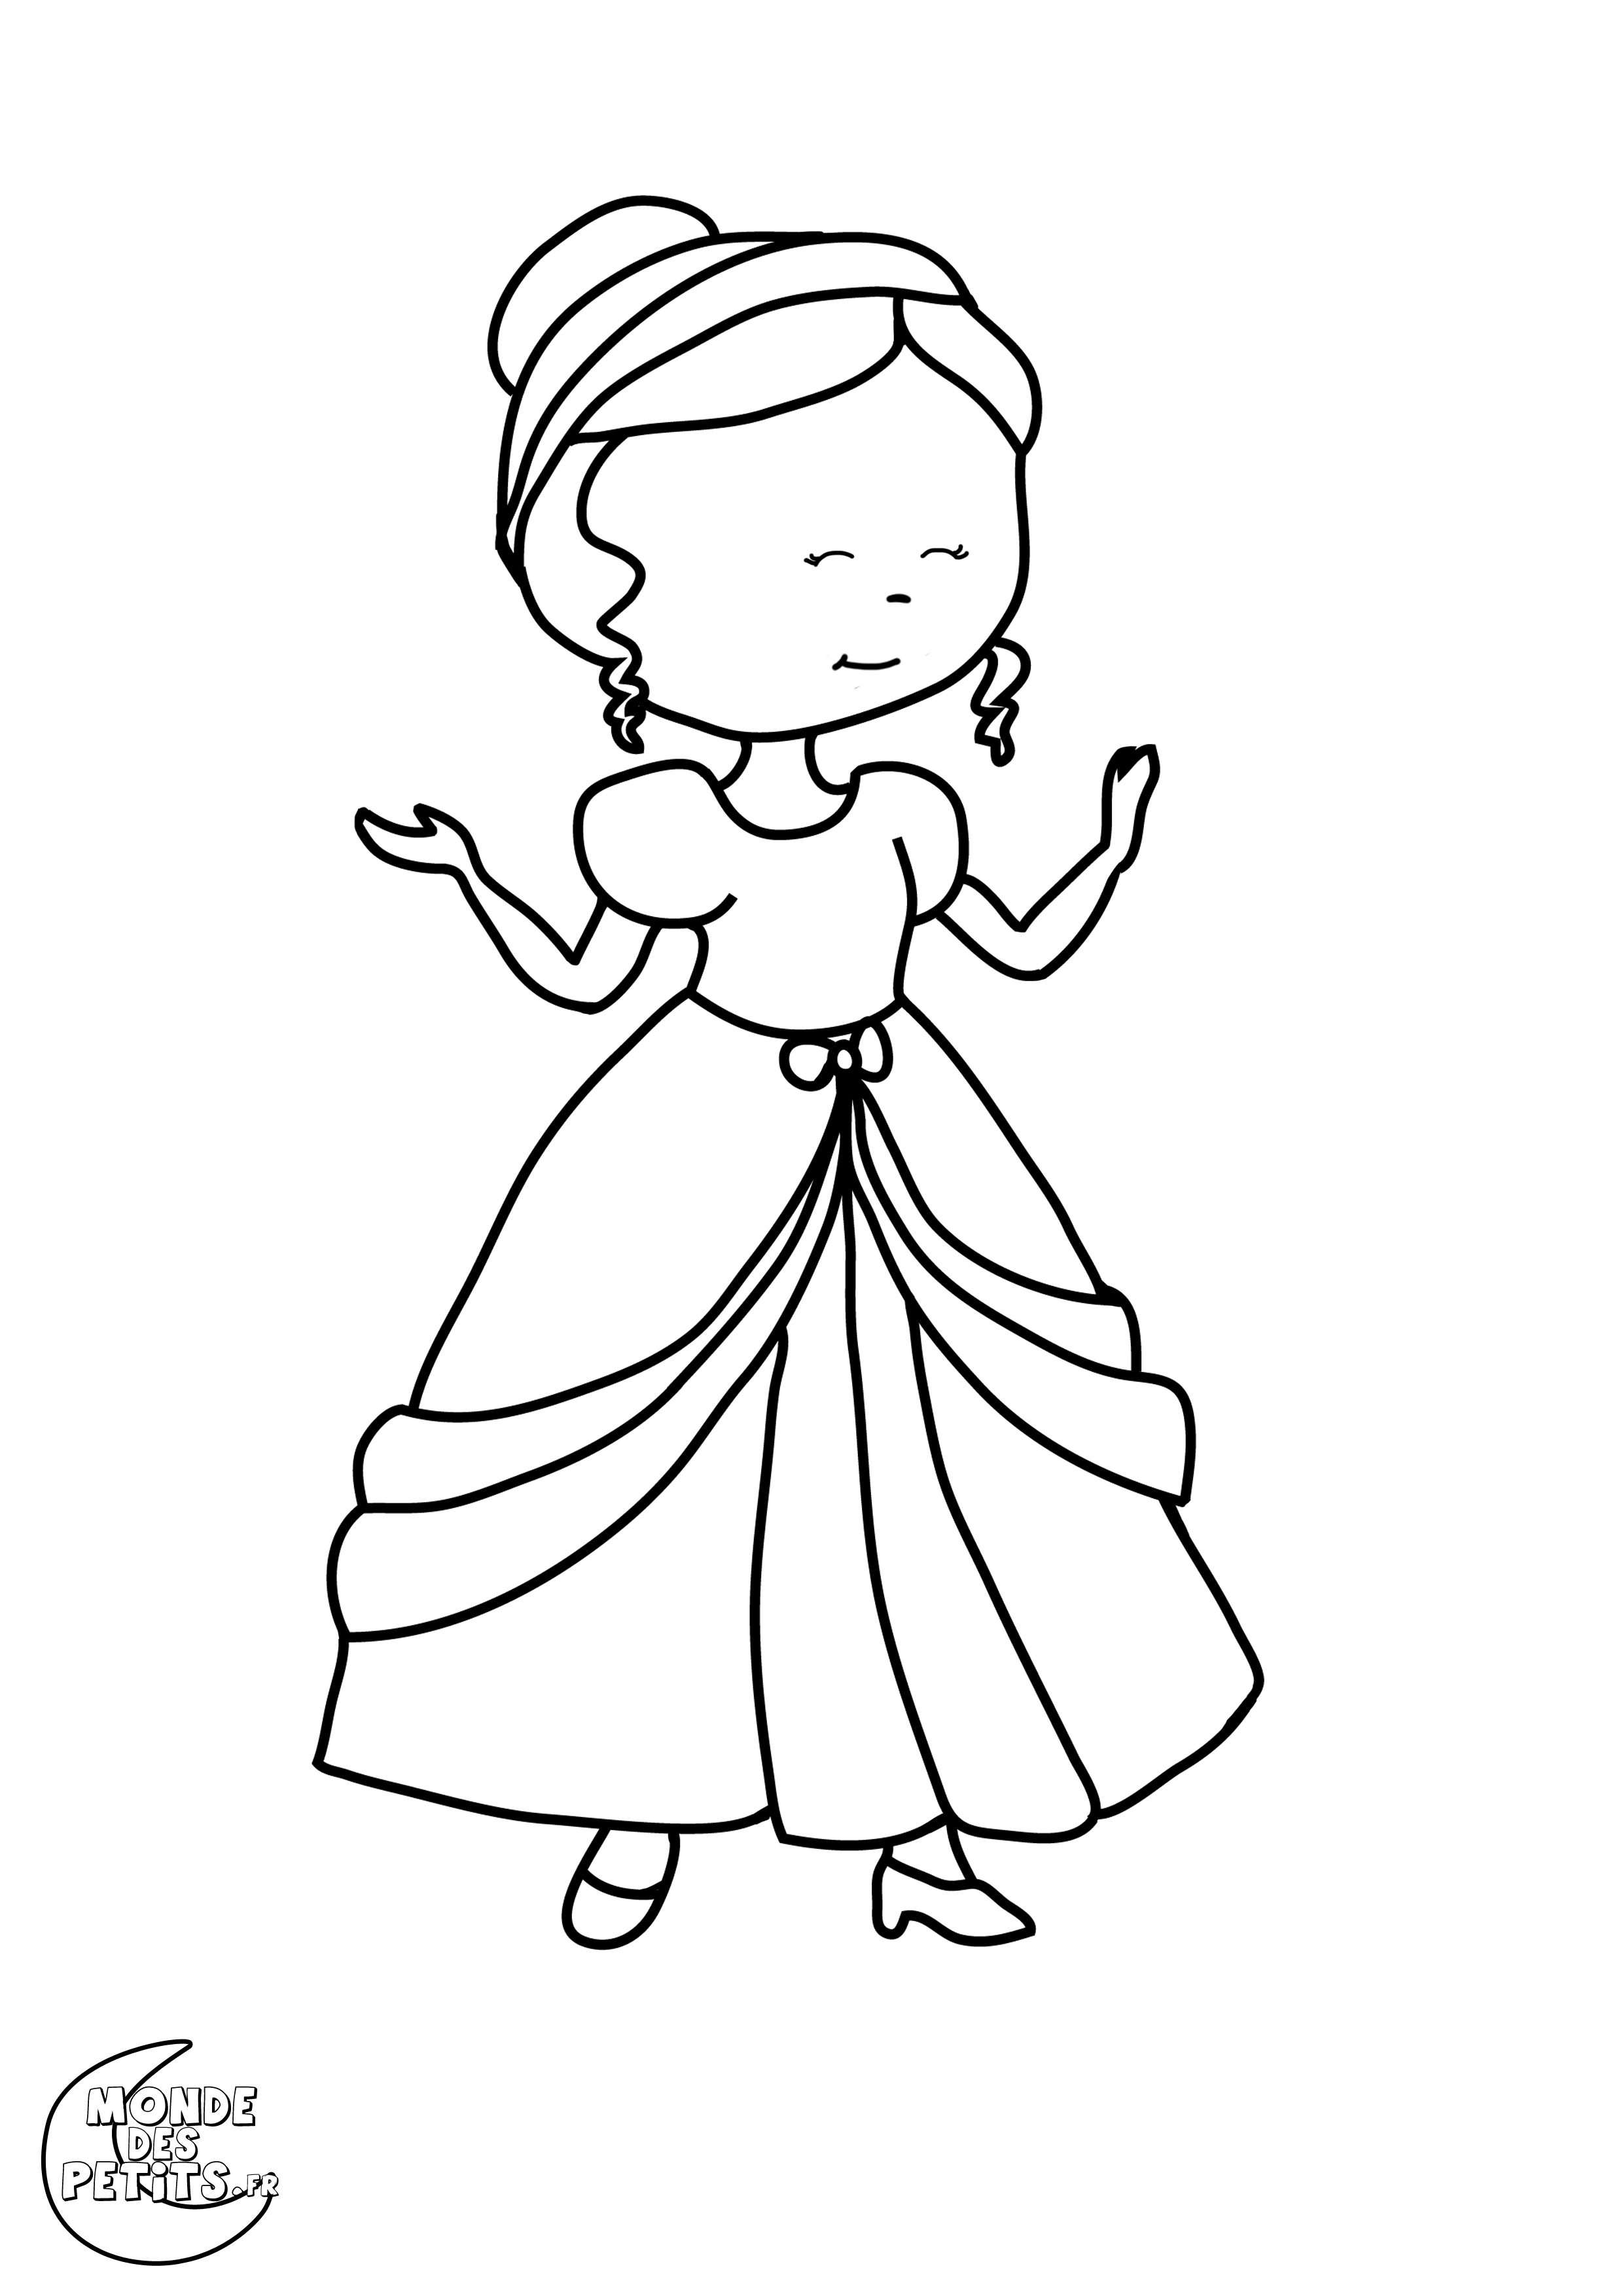 Free Princesses coloring page to print and color, for kids